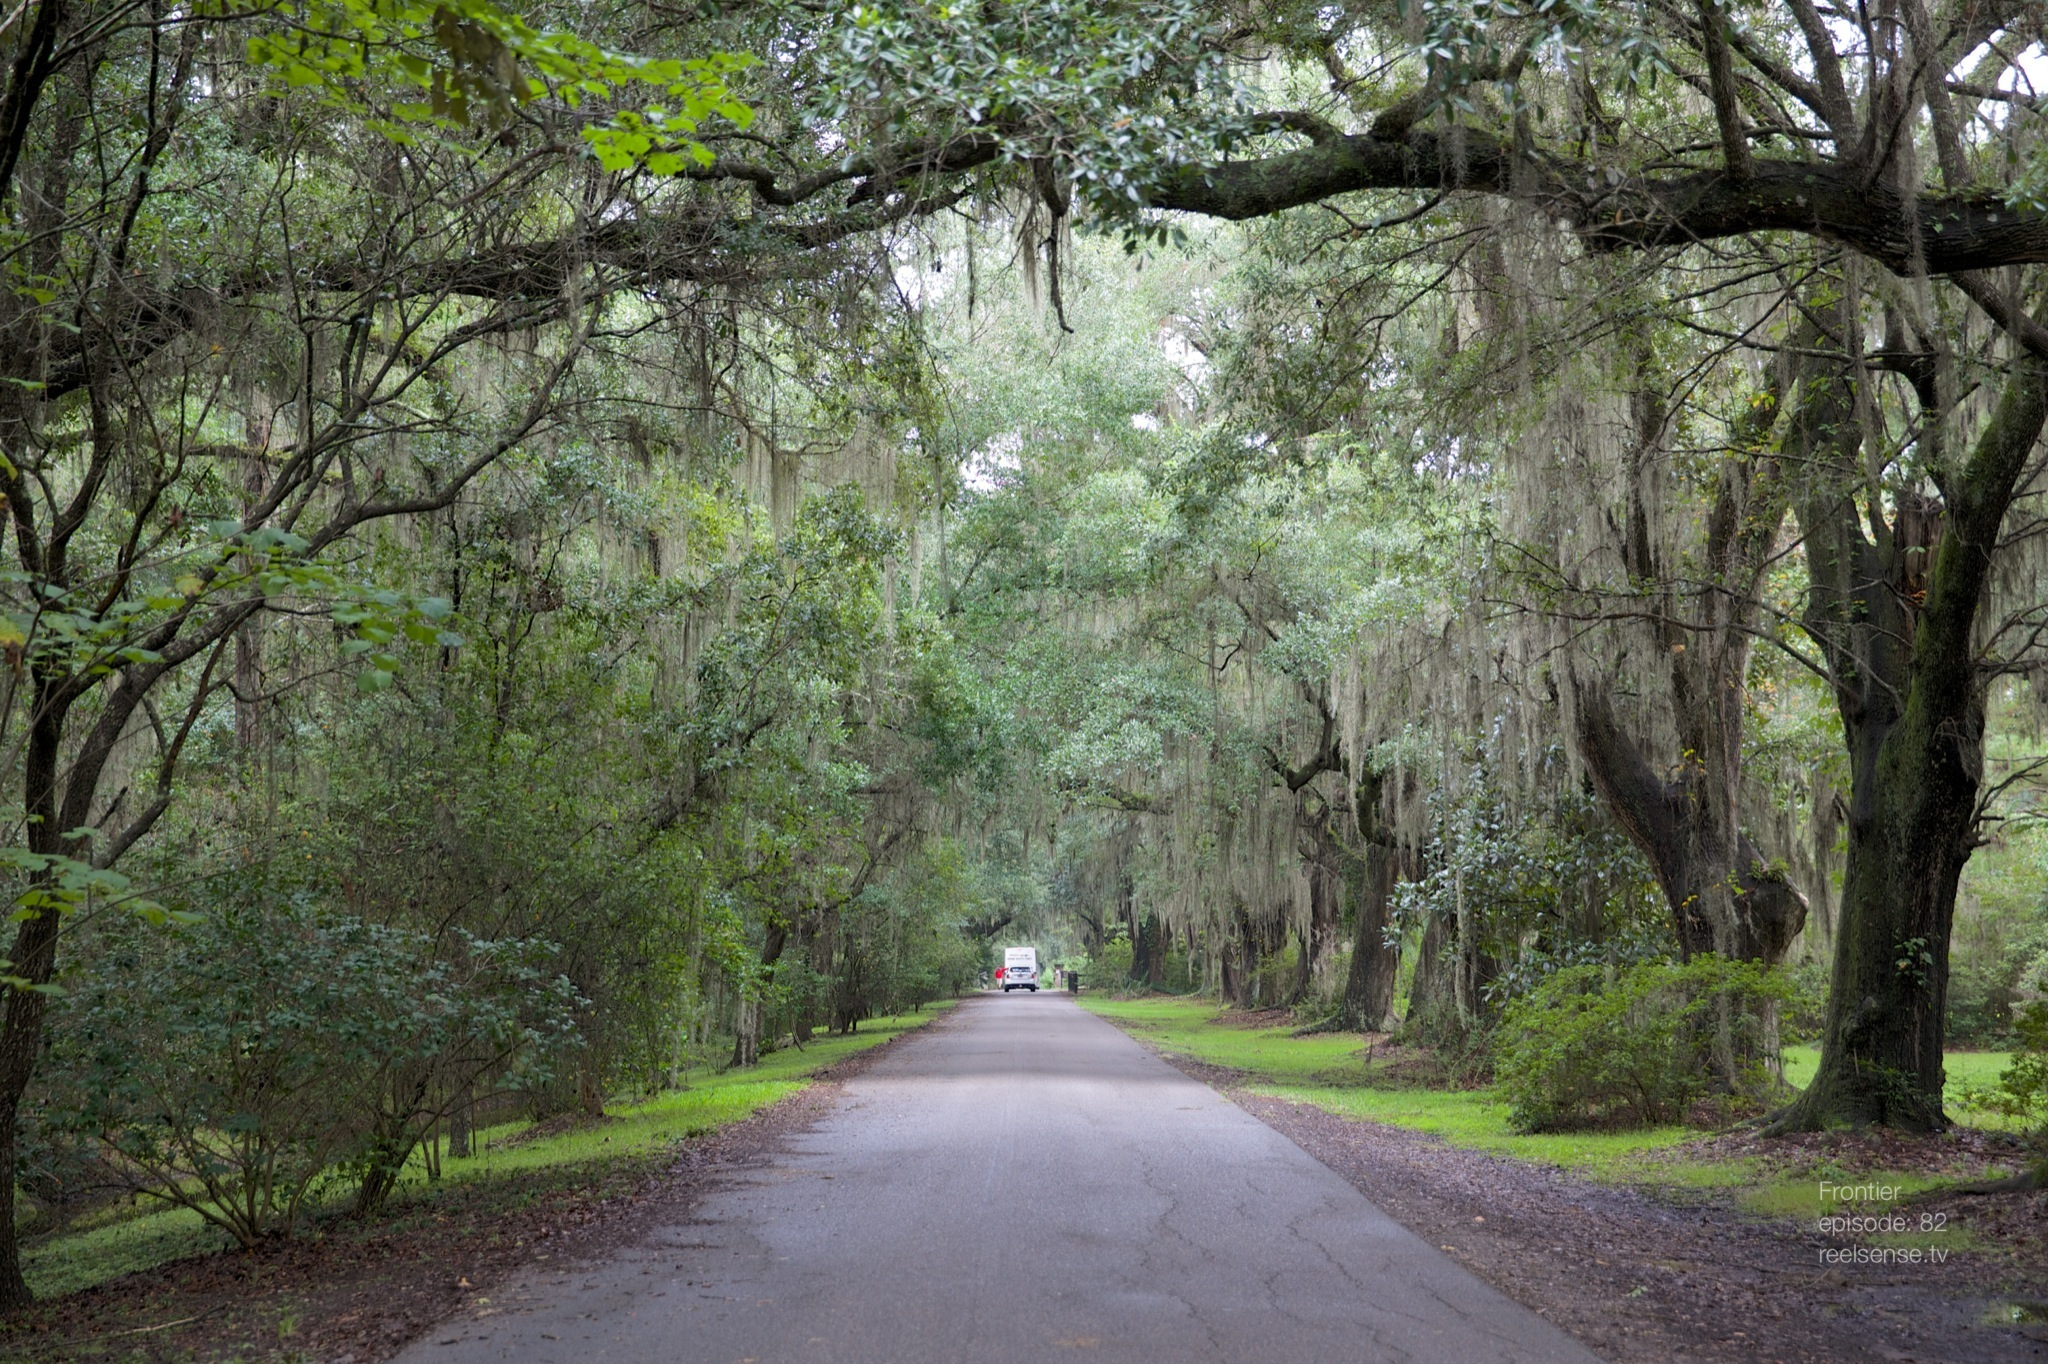 Old trees and Spanish moss